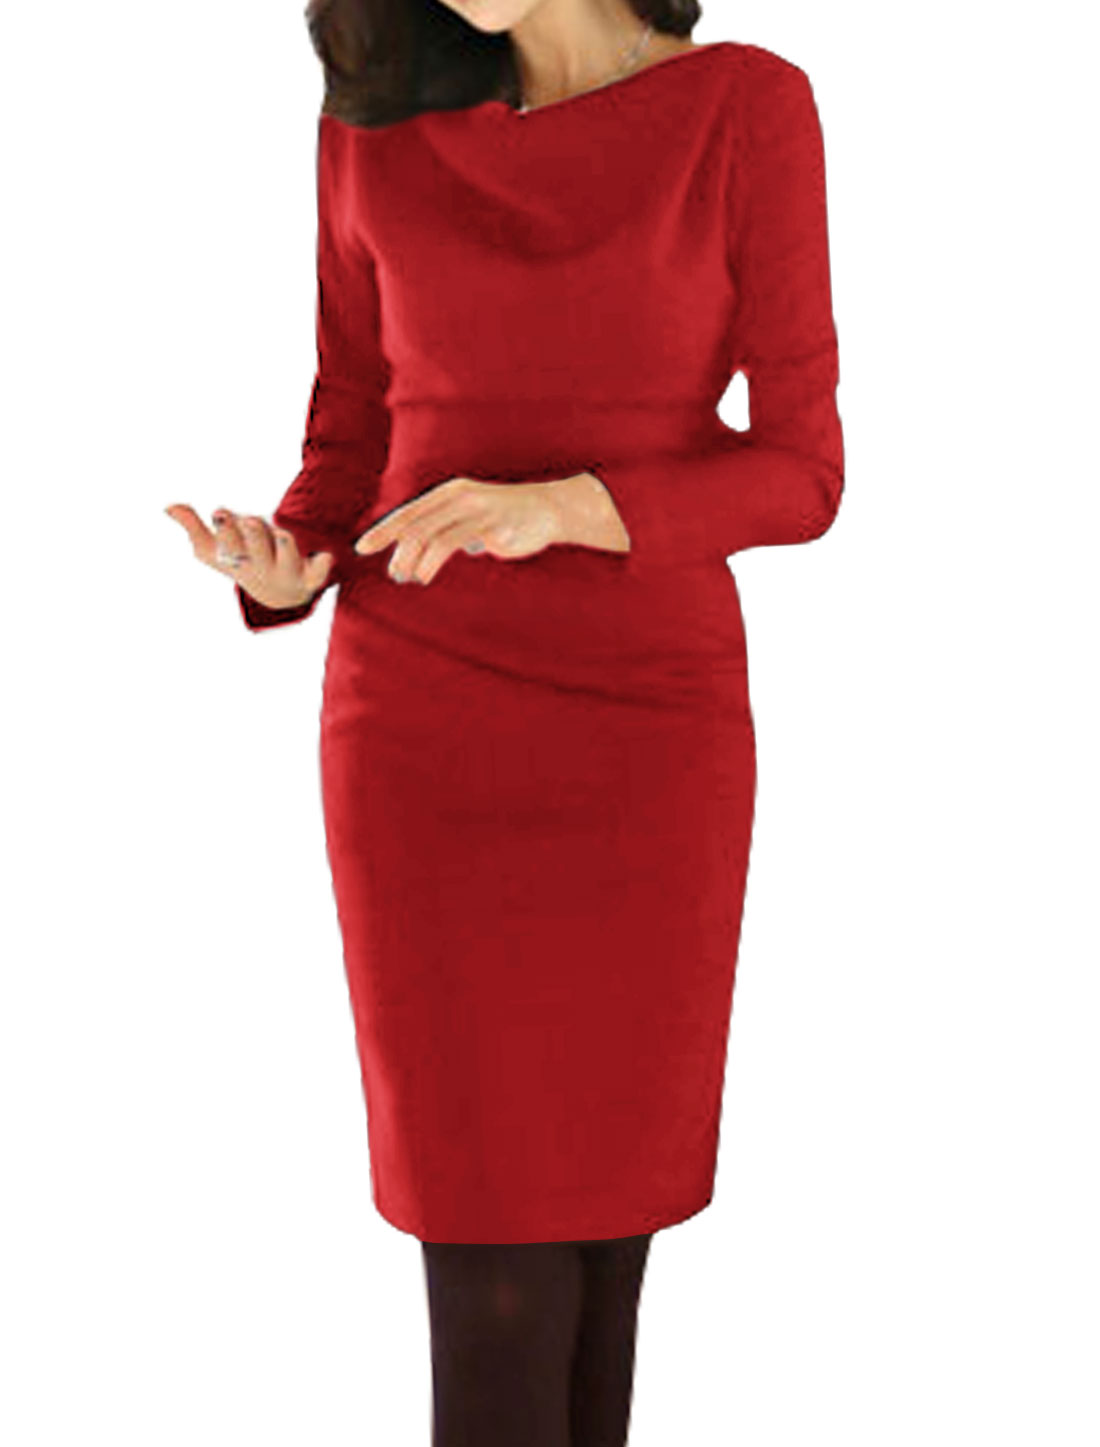 Ladies Long Sleeves Cowl Neck Ruched Sheath Dress Red M